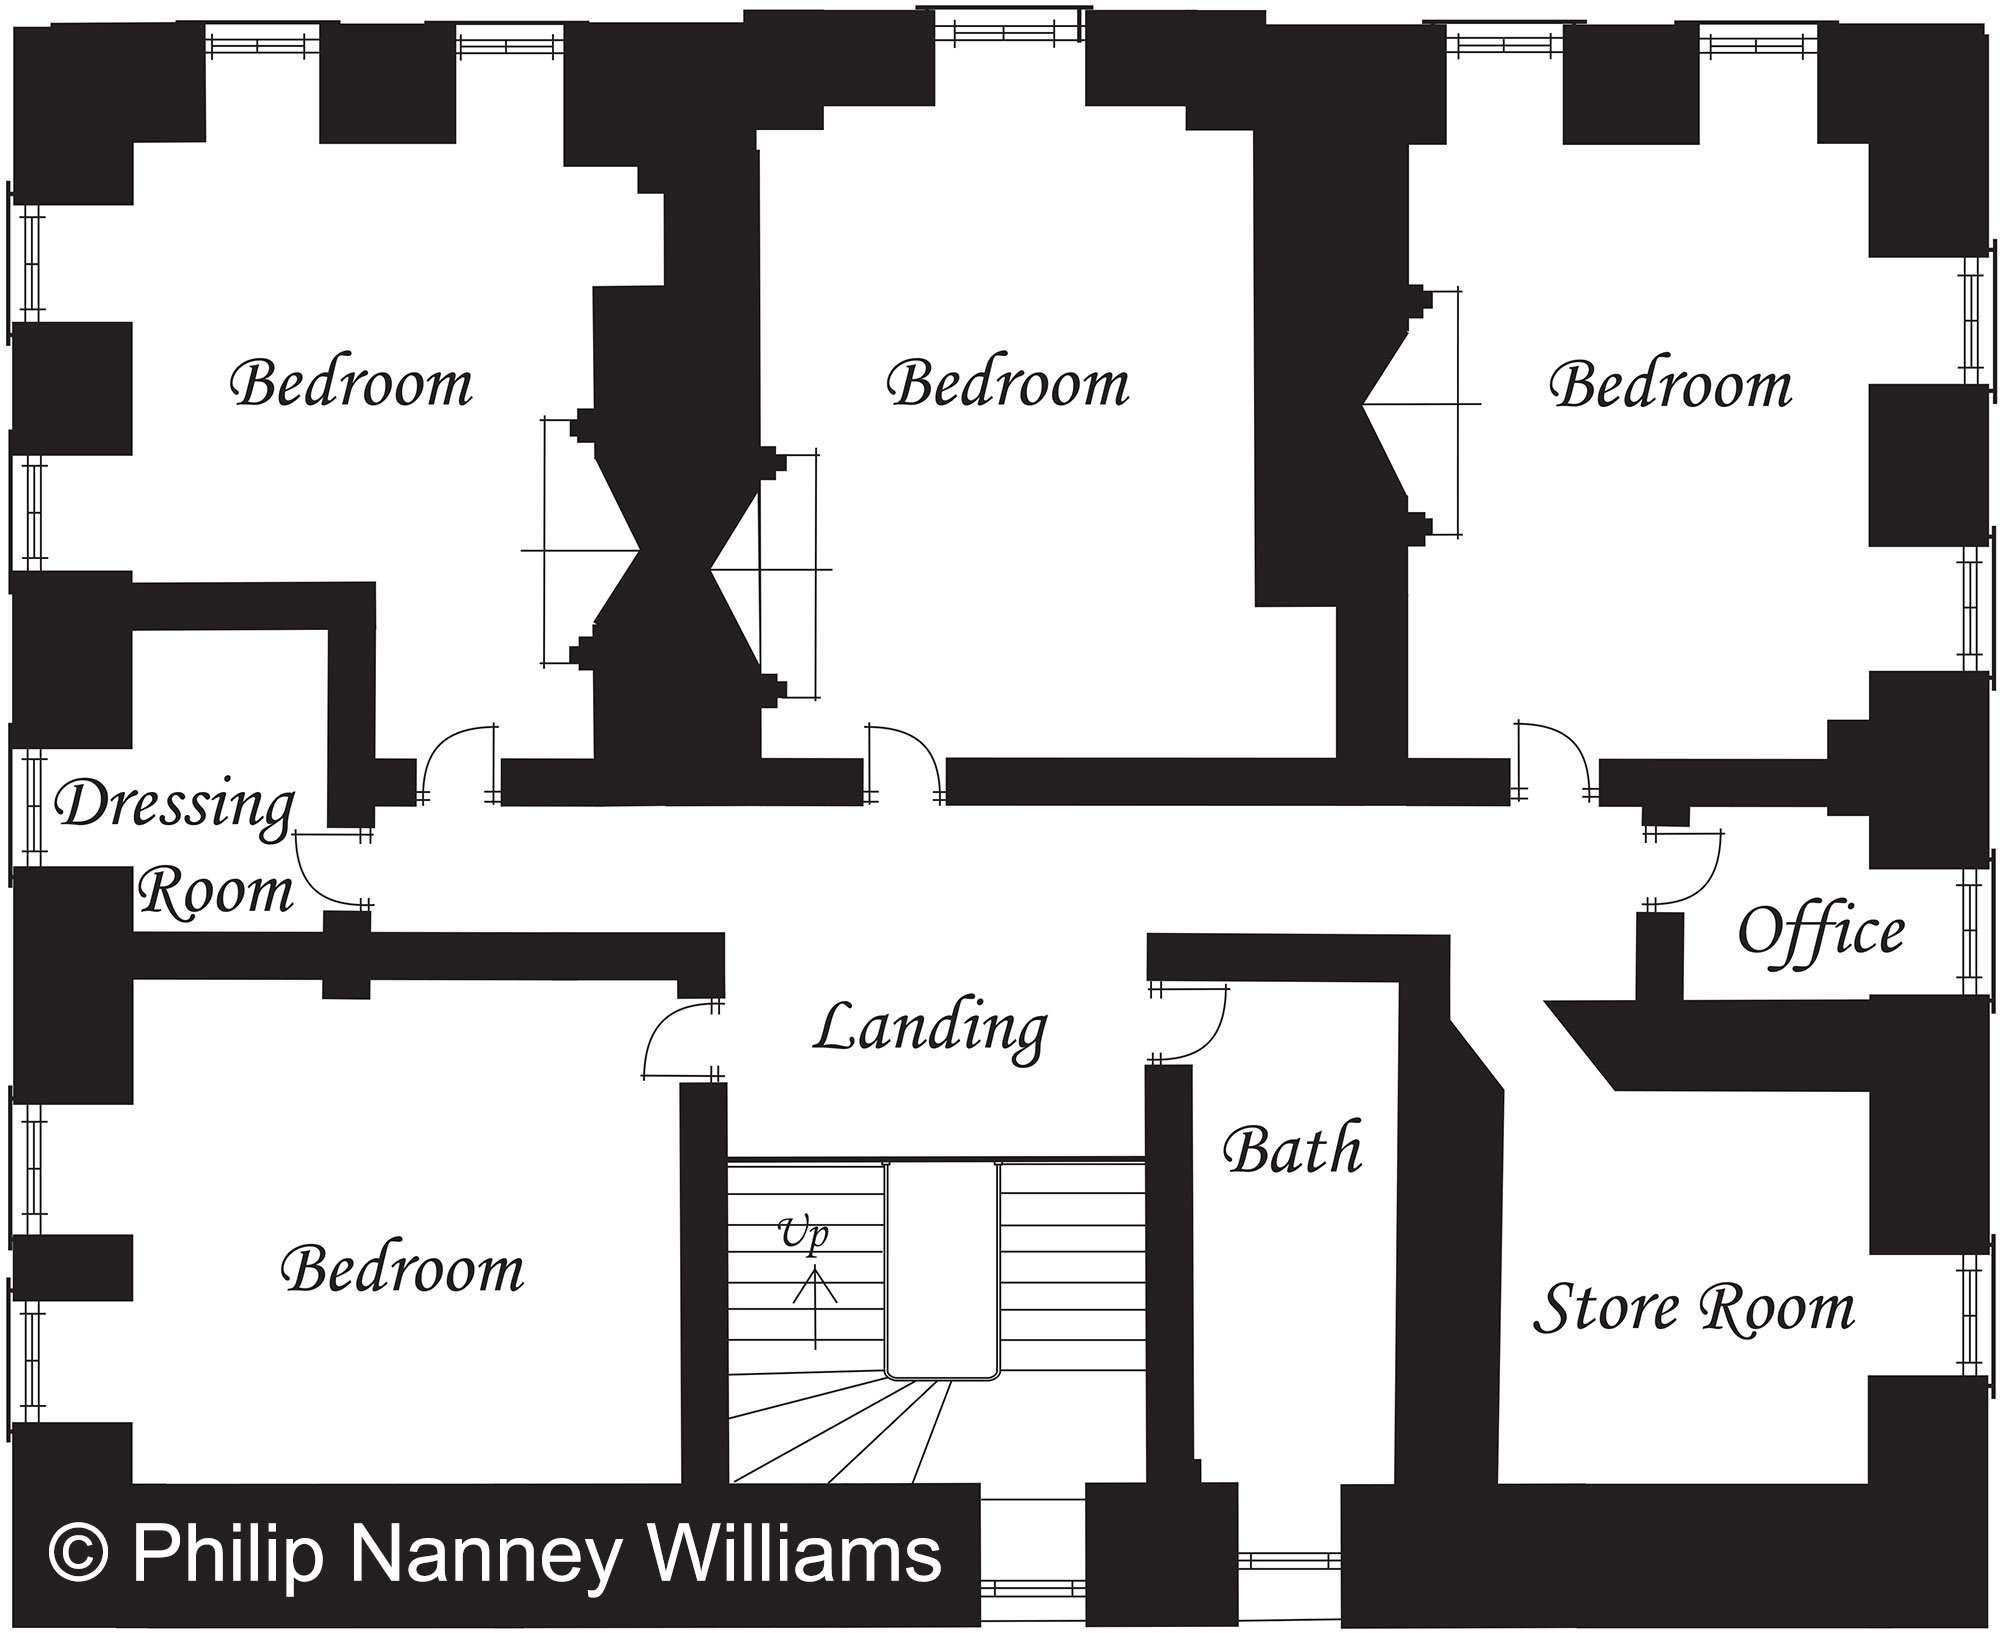 First Floor - © Philip Nanney Williams